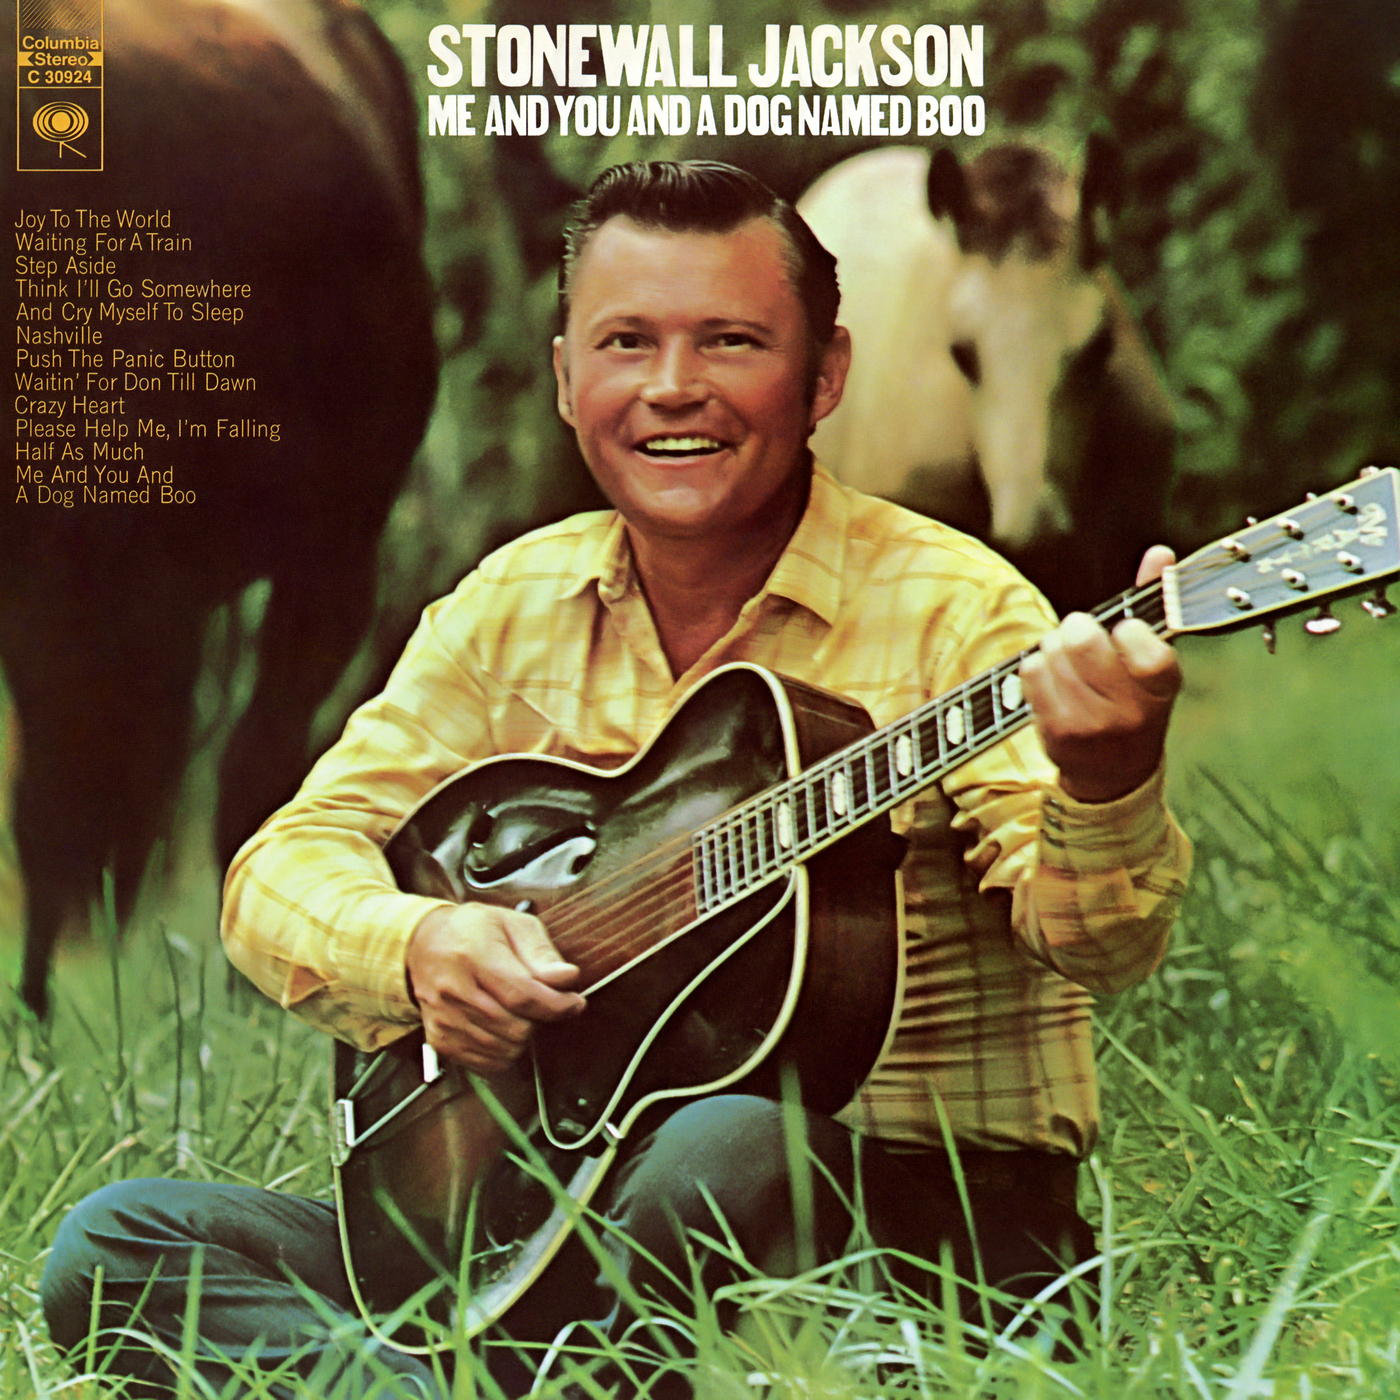 Me and You and a Dog Named Boo - Stonewall Jackson